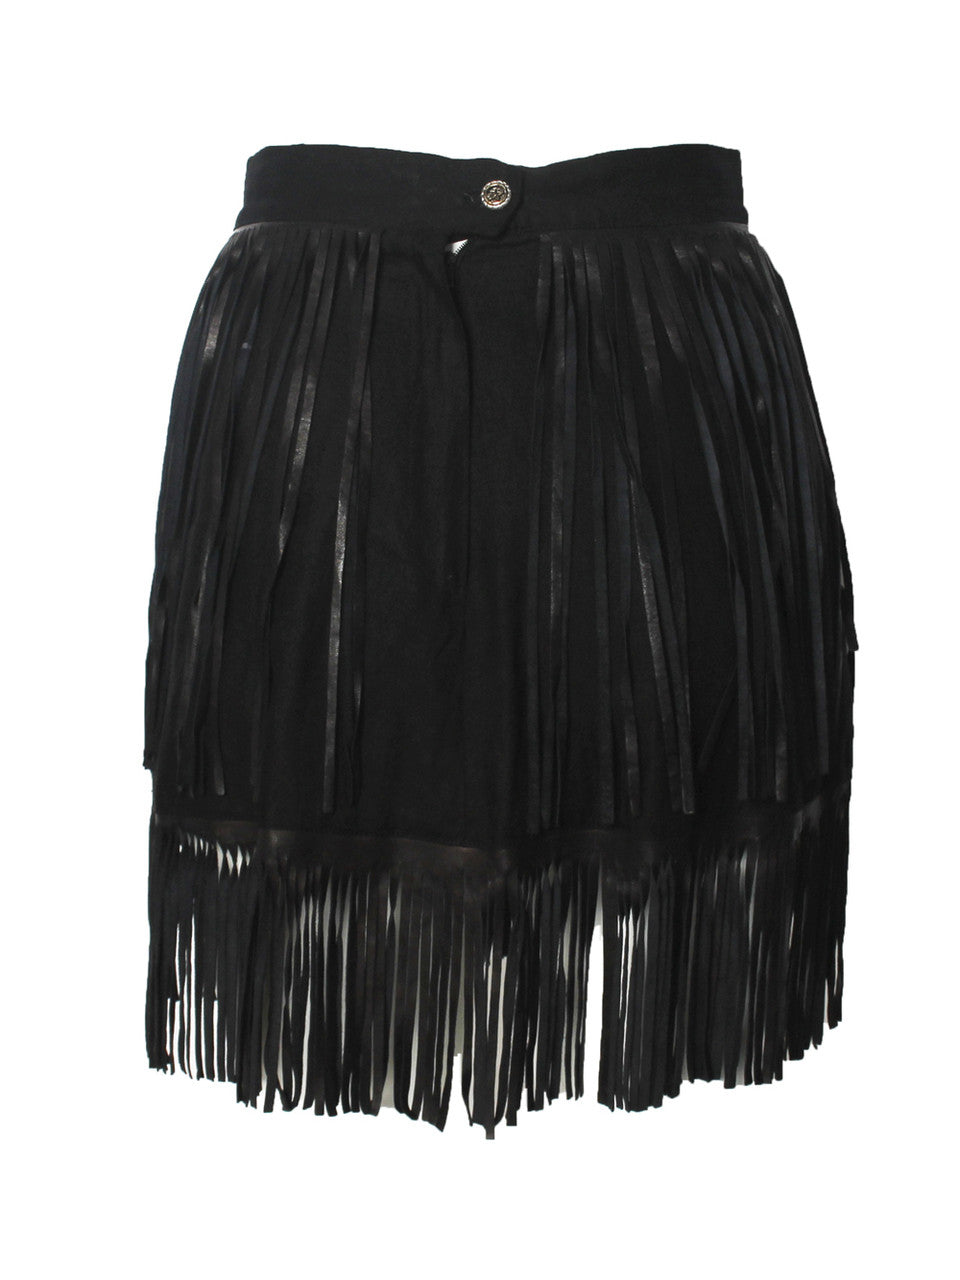 Claude Barthelemy Fringe Jacket and Skirt Set